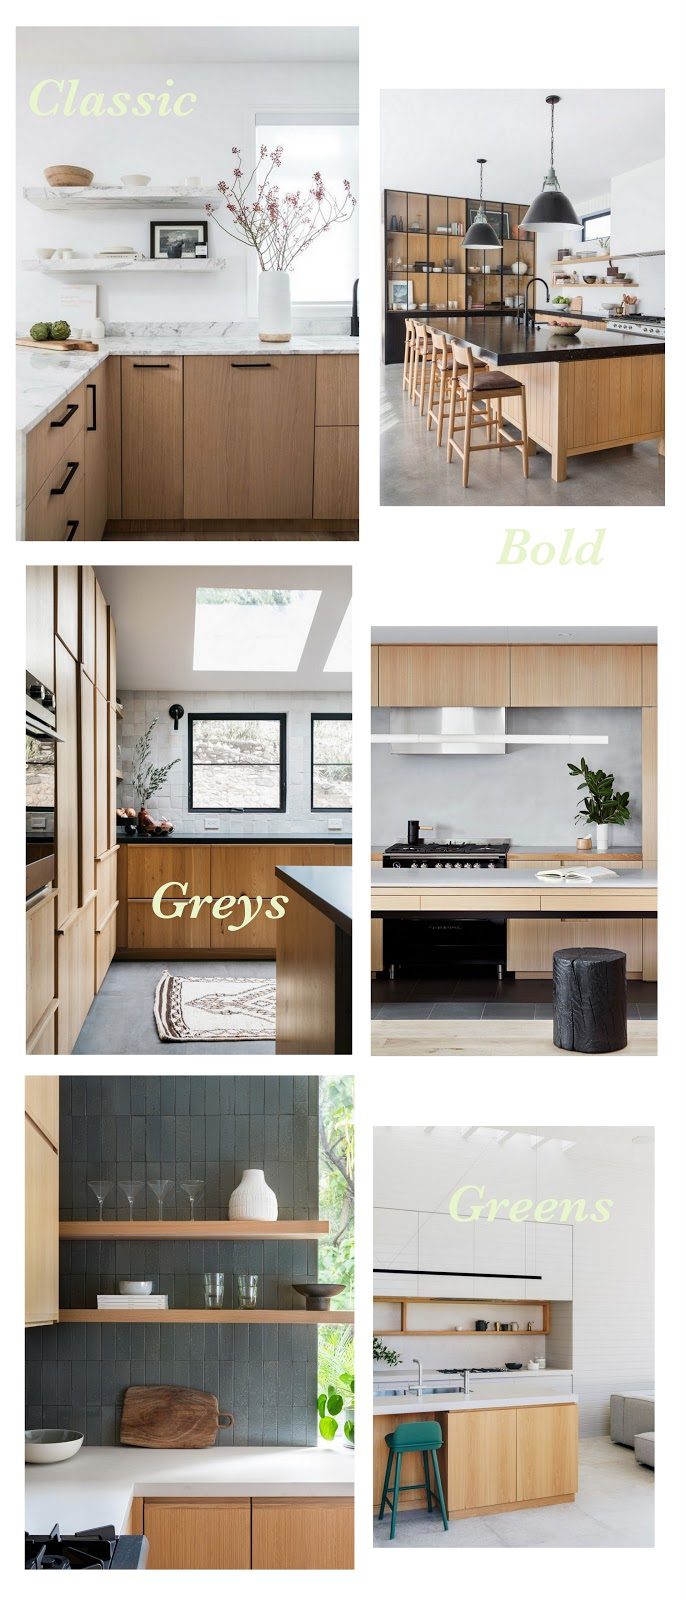 Kitchen designs colors 2020, Ikea kitchen design